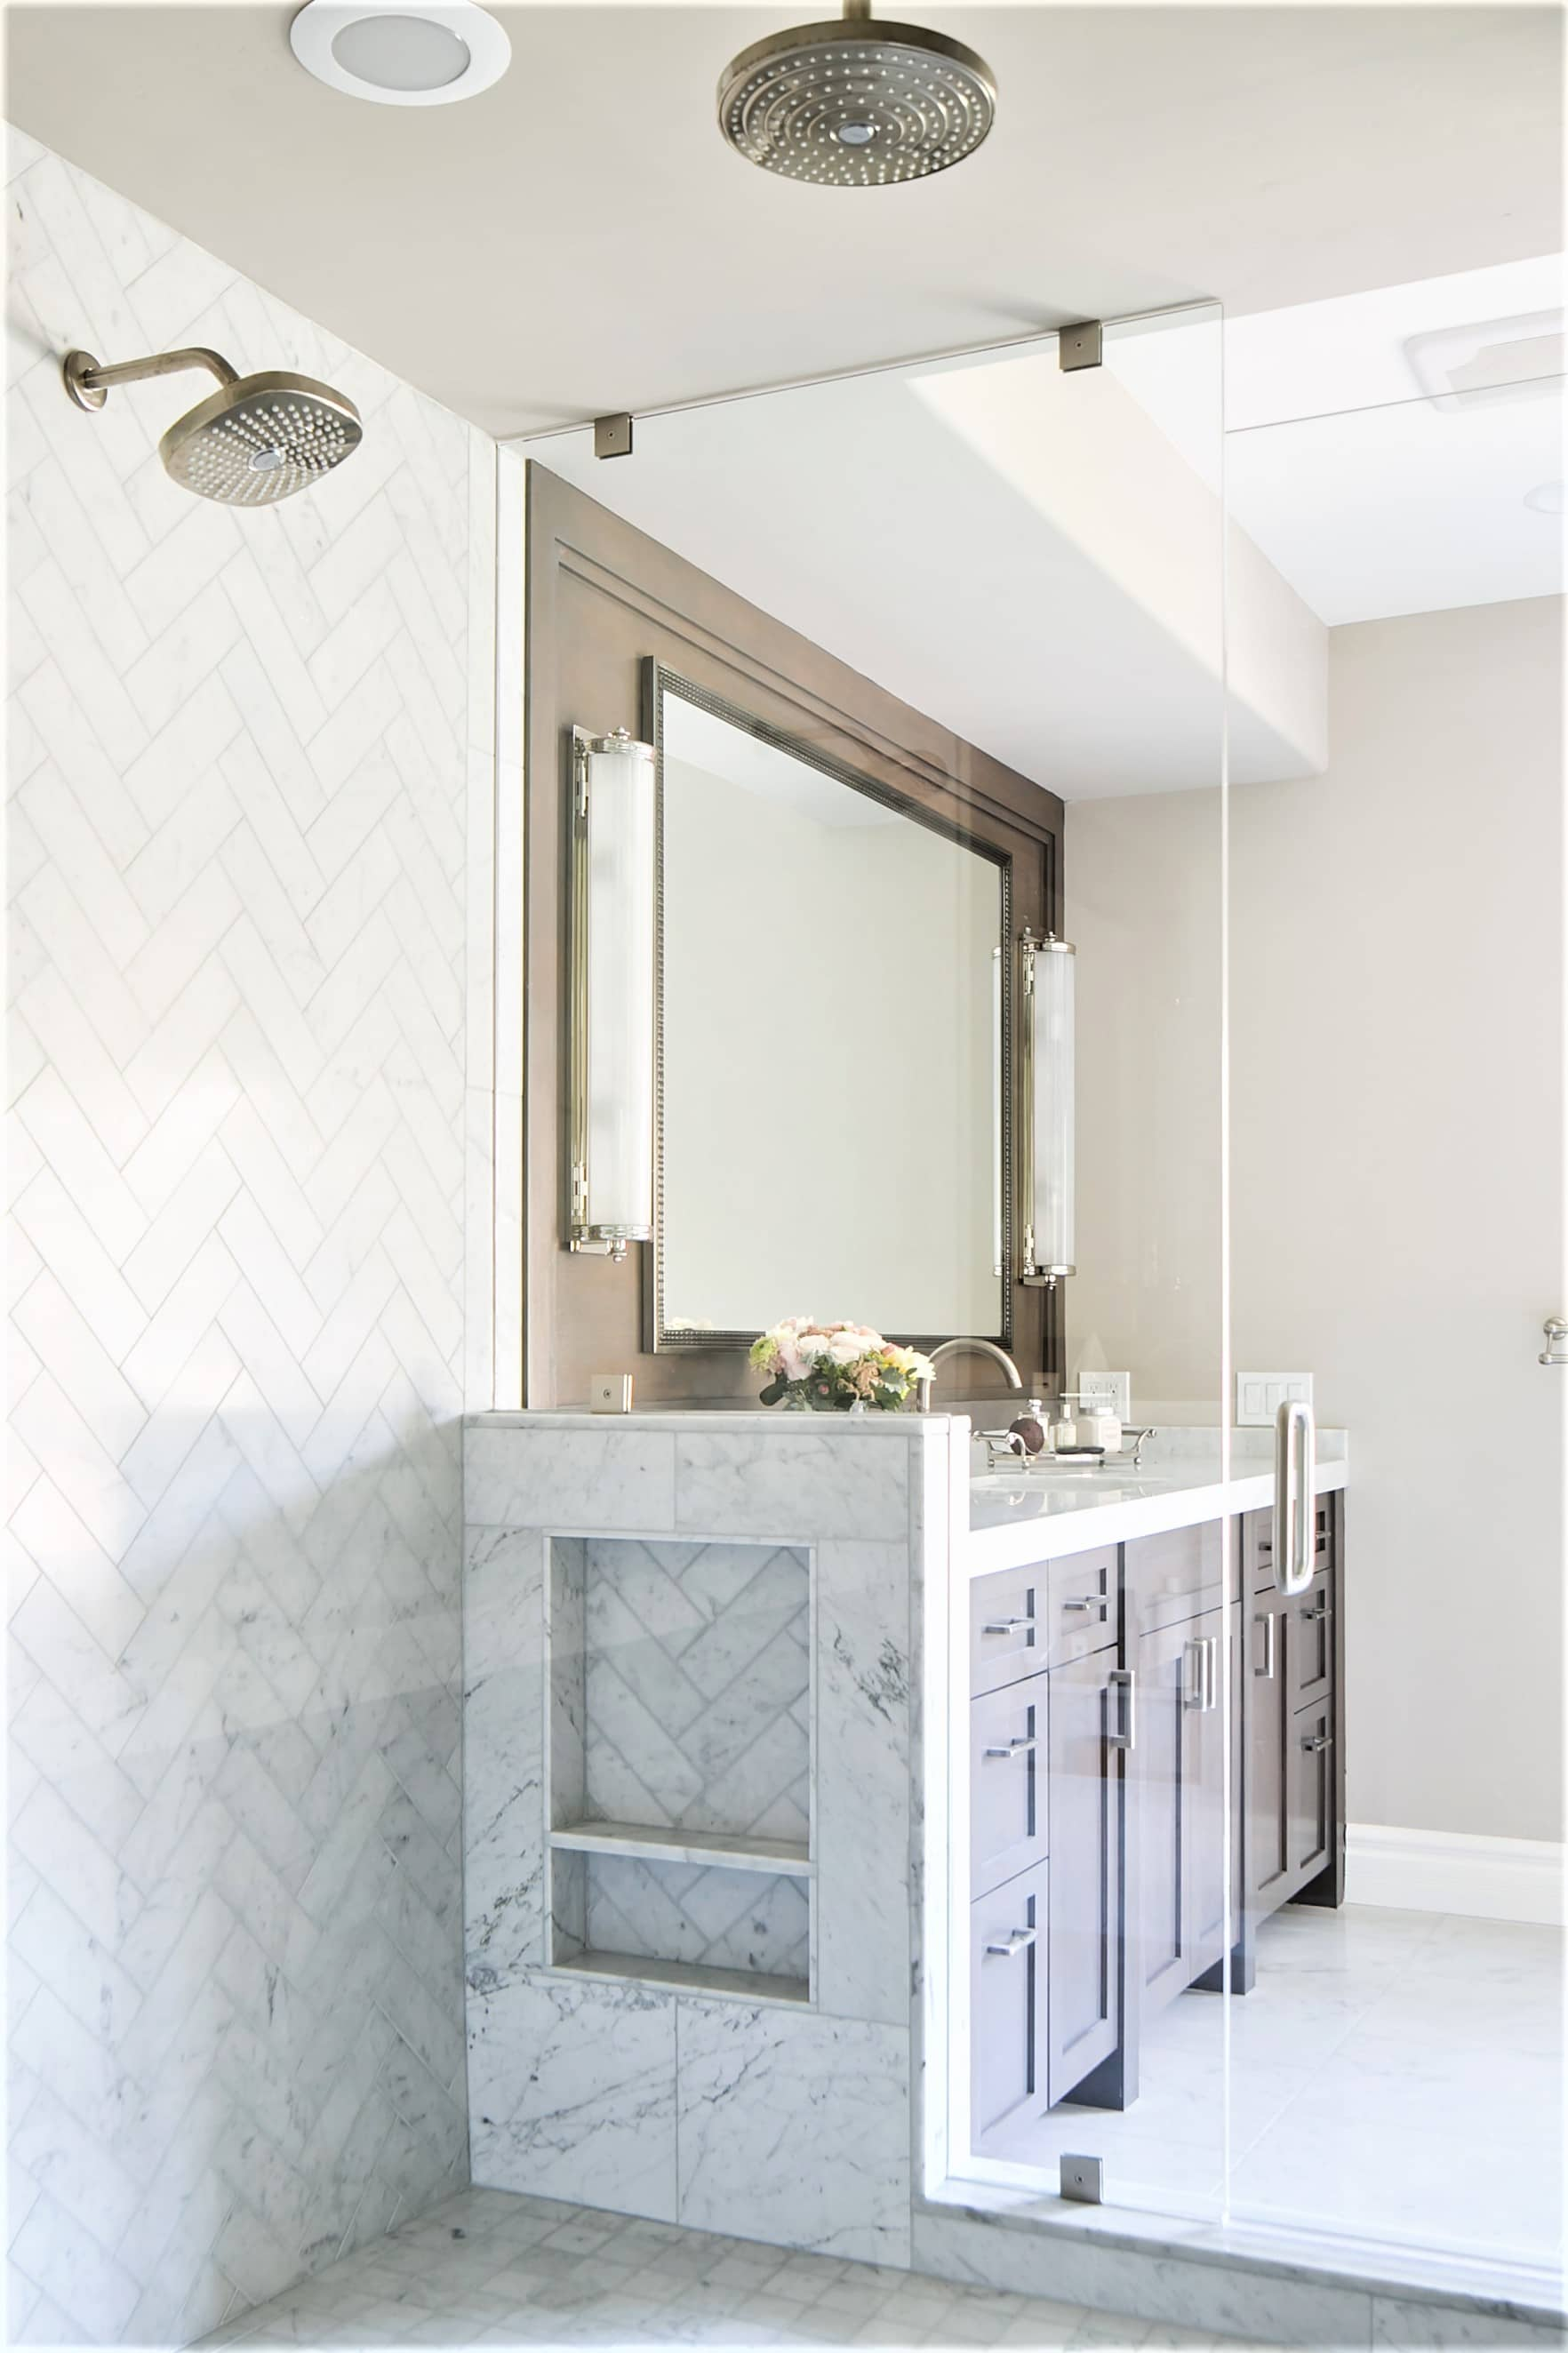 Jill Shevlin Design Vero Beach Interior Designer Master Bath Renovation